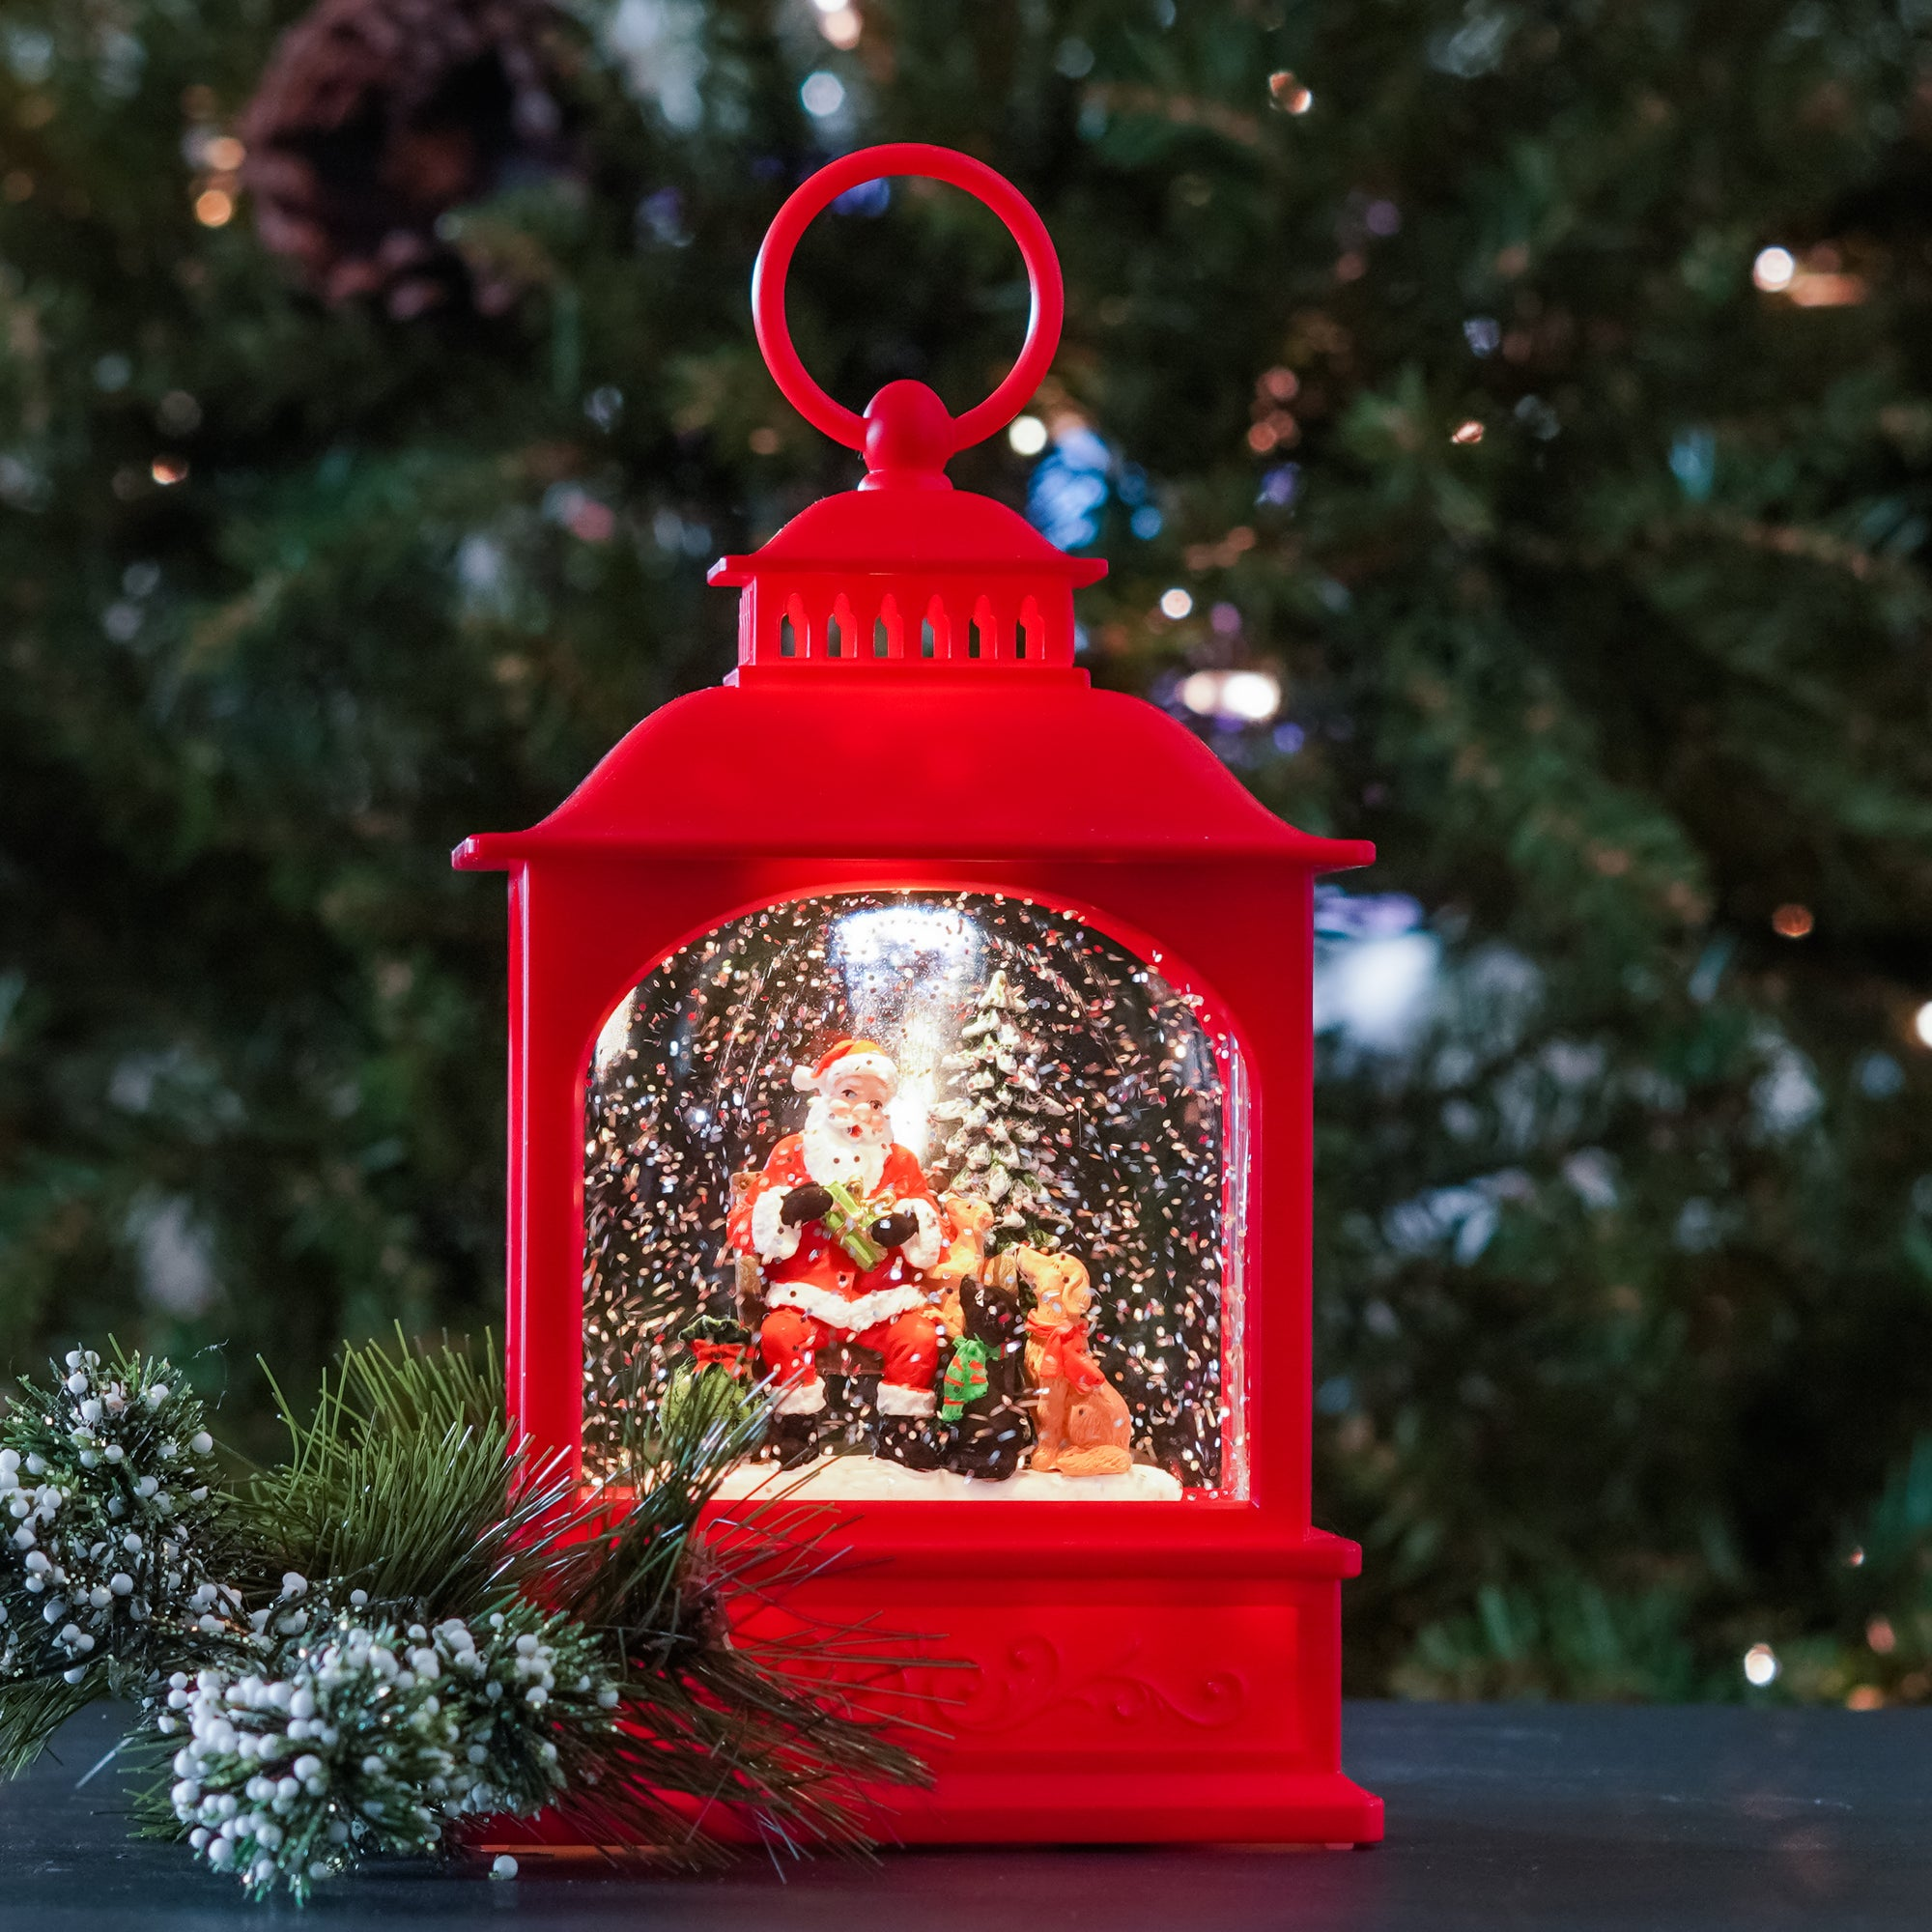 This adorable scene of Santa visiting with a group of four legged friends is a holiday lantern favorite. This will be a treasured holiday decoration for years to come. A great holiday gift for any dog lover!